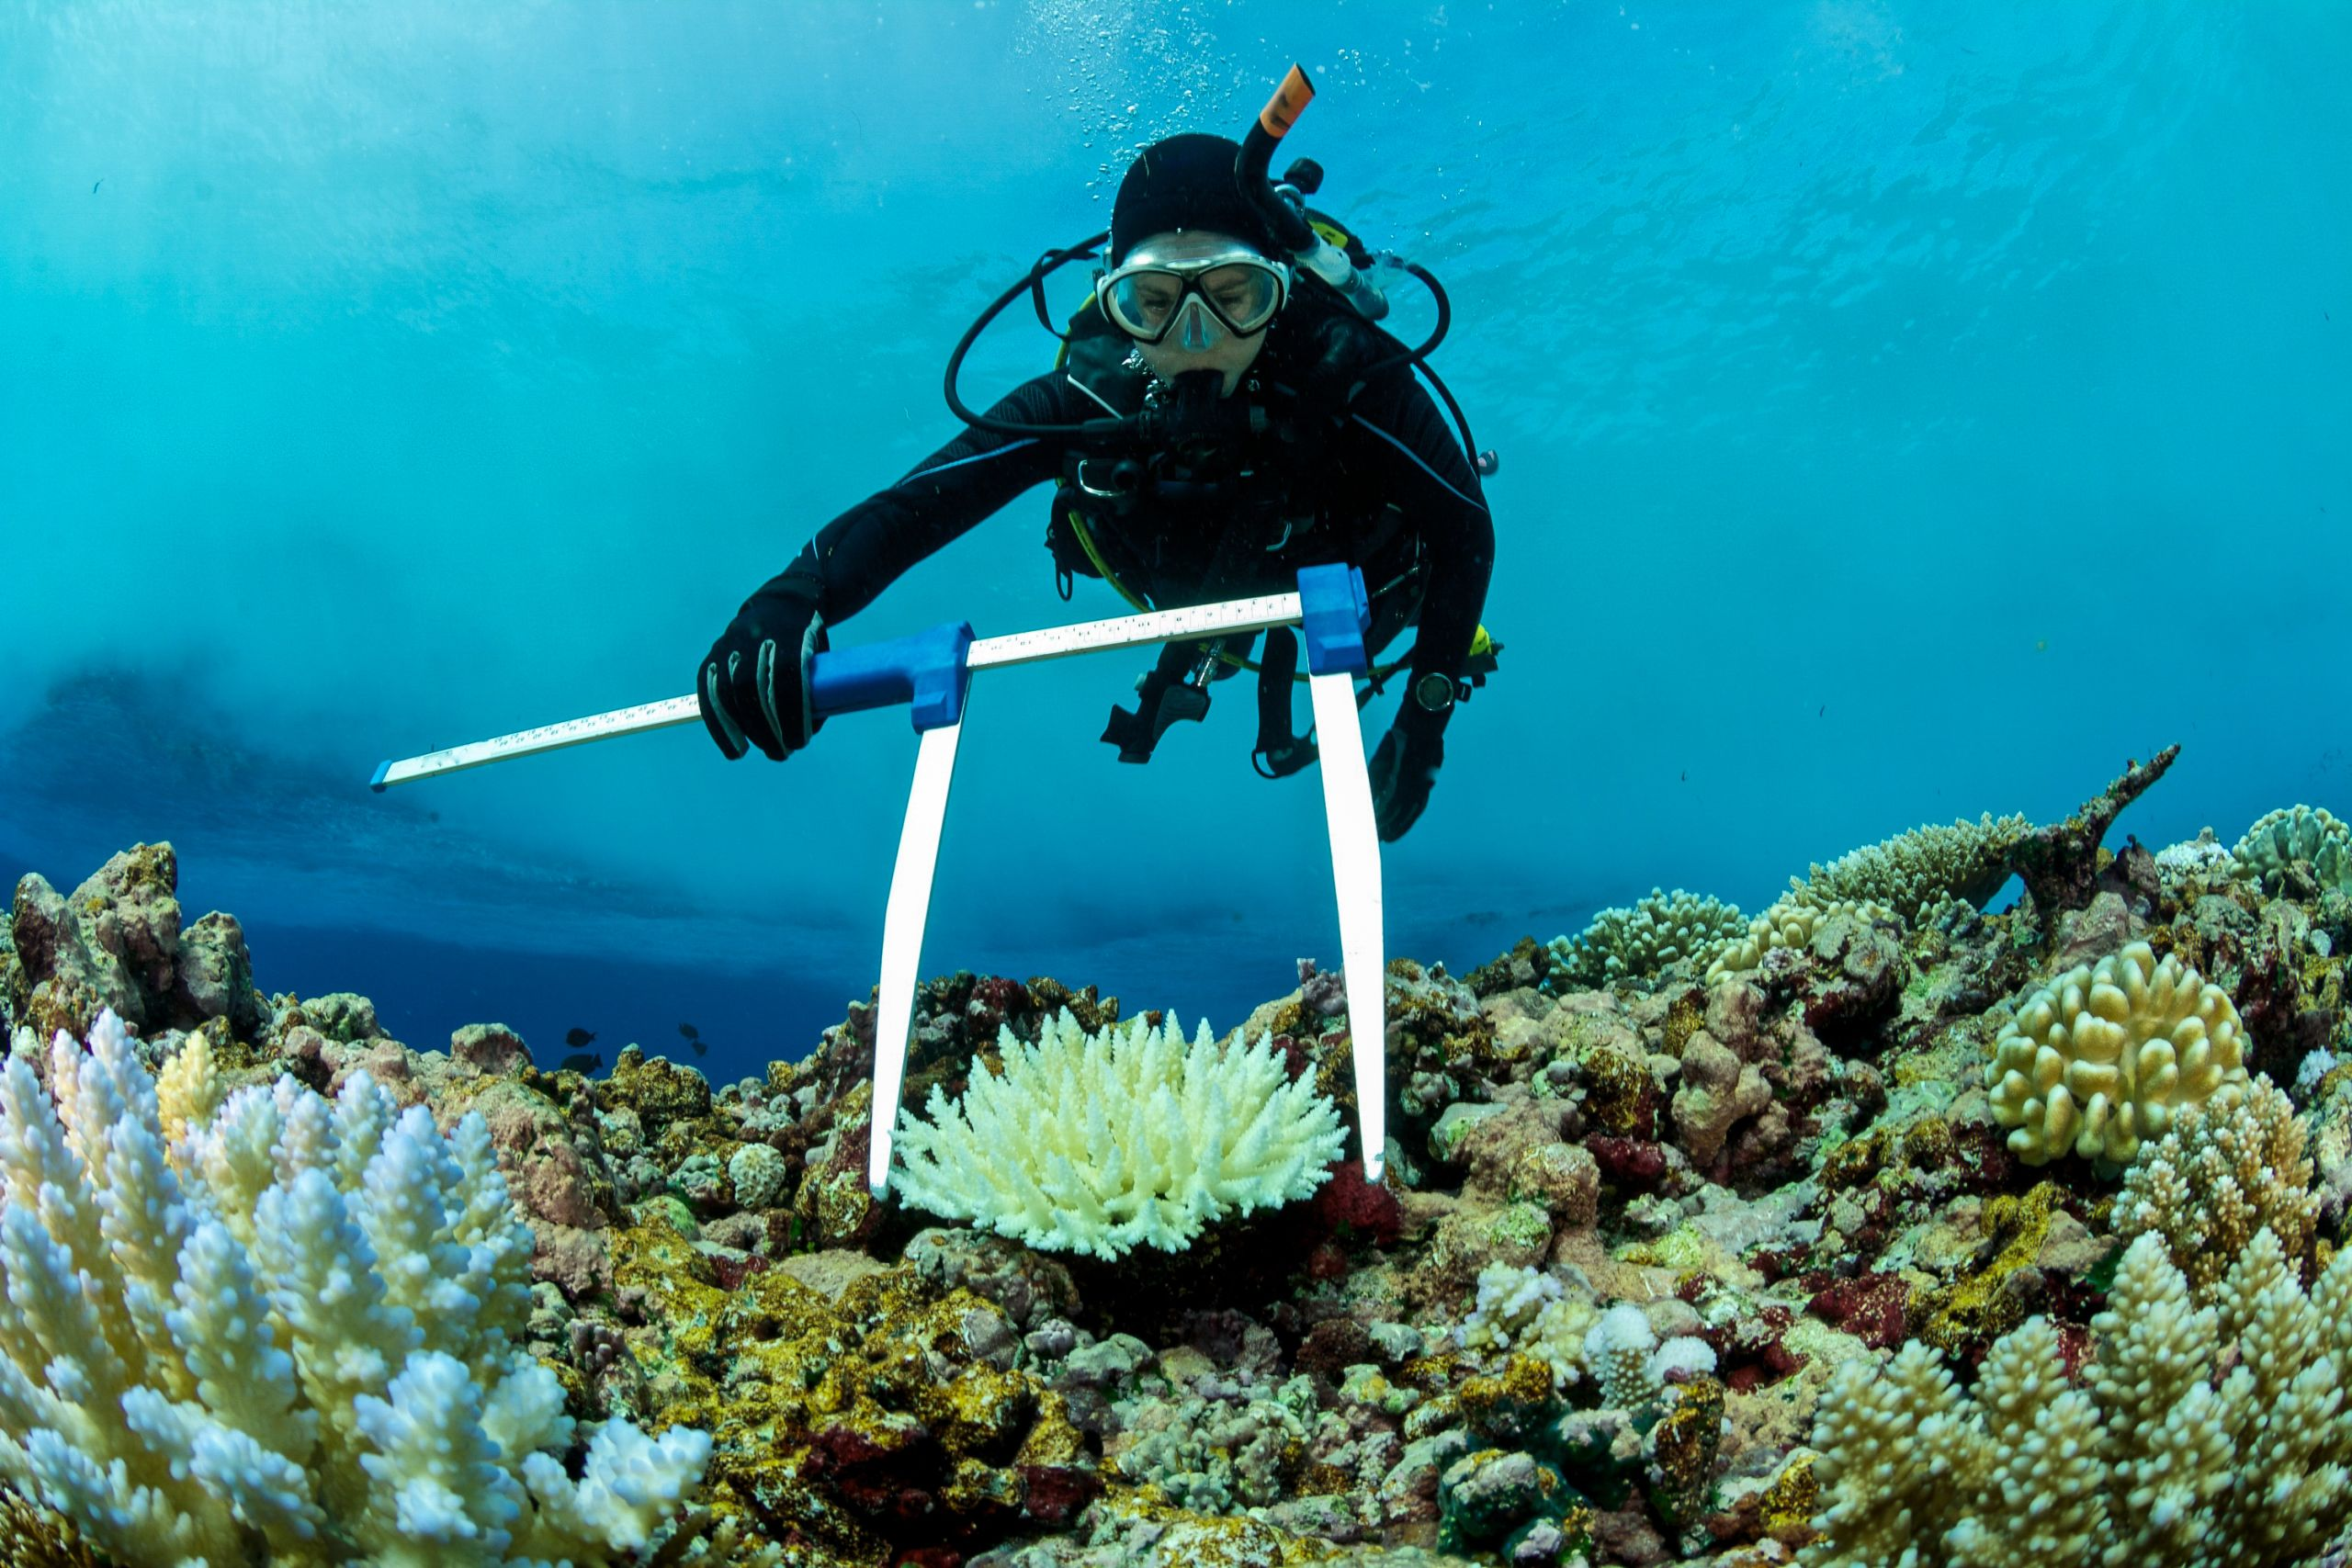 Acidification killing coral reefs